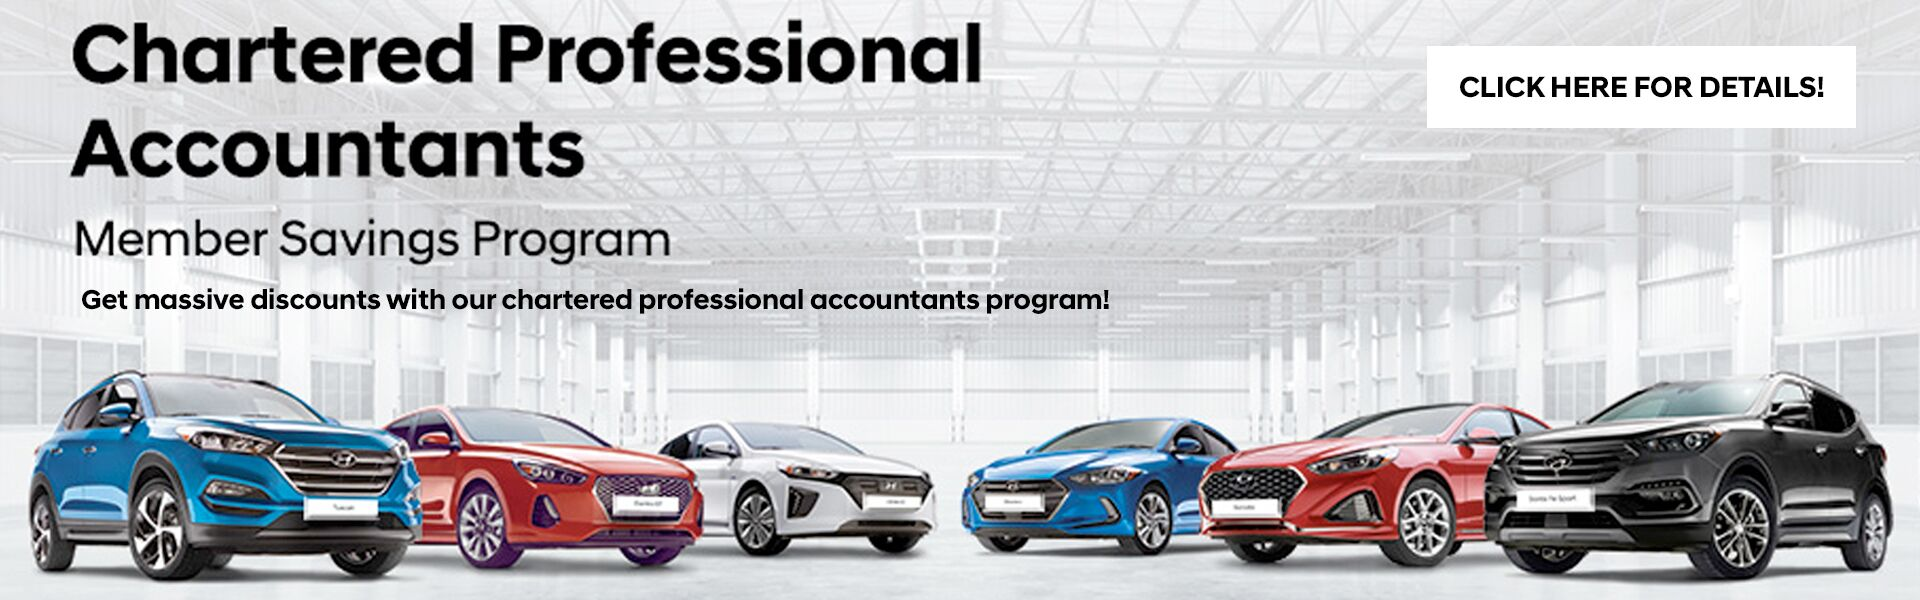 Chartered Professional Accountants MSP